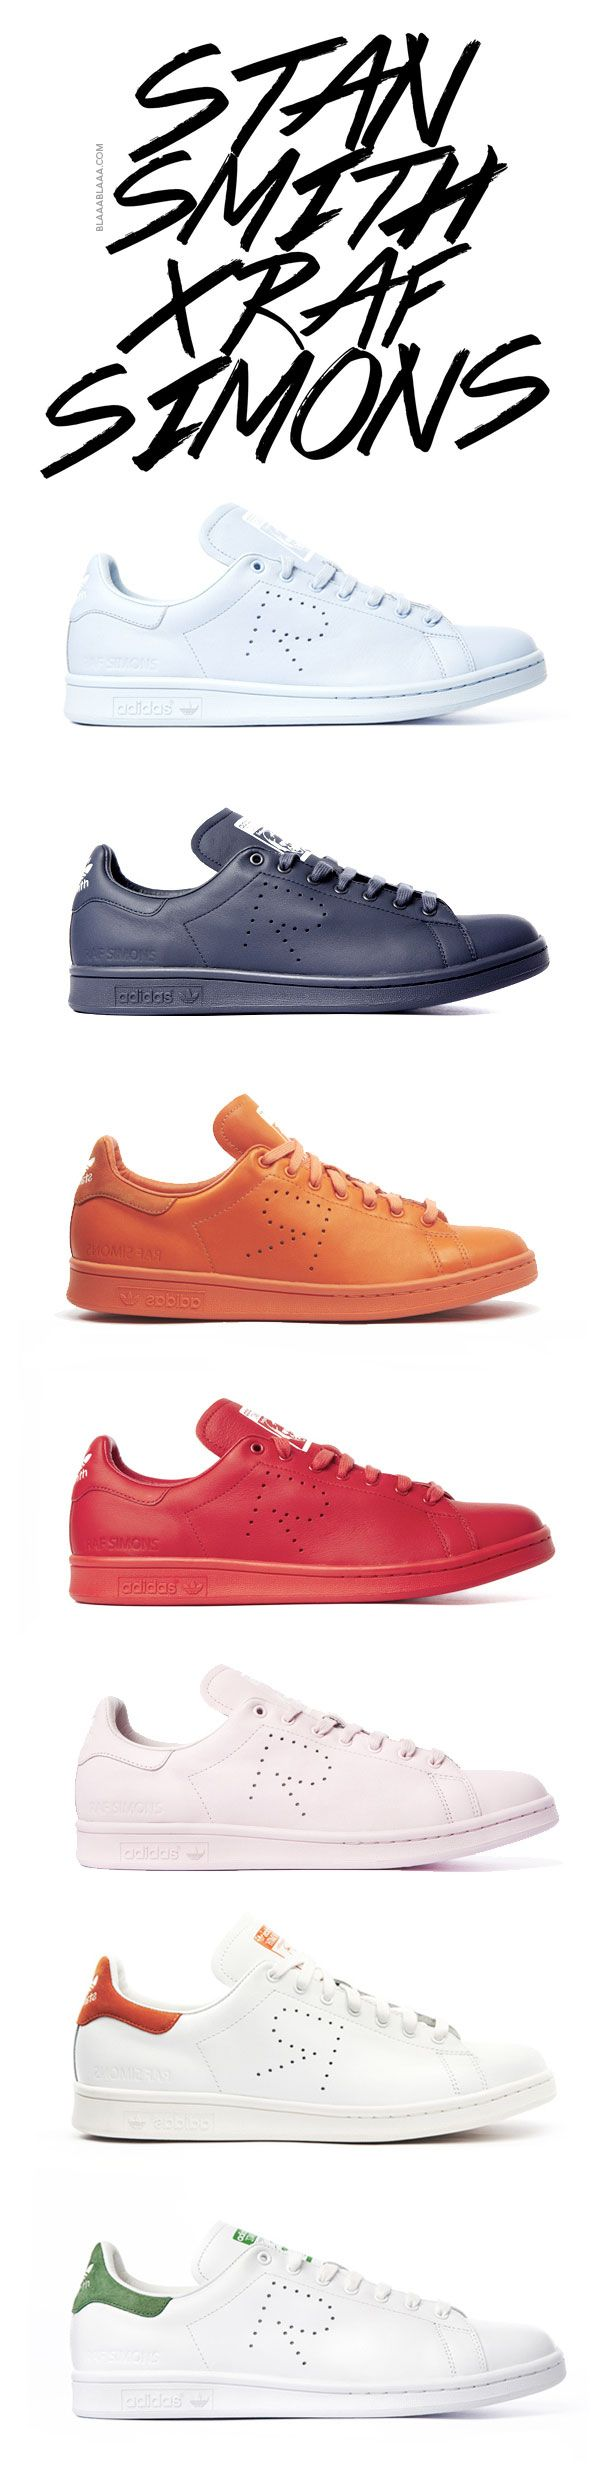 Stan Smith x Raf Simons……re pinned by Maurie Daboux 웃╰☆╮